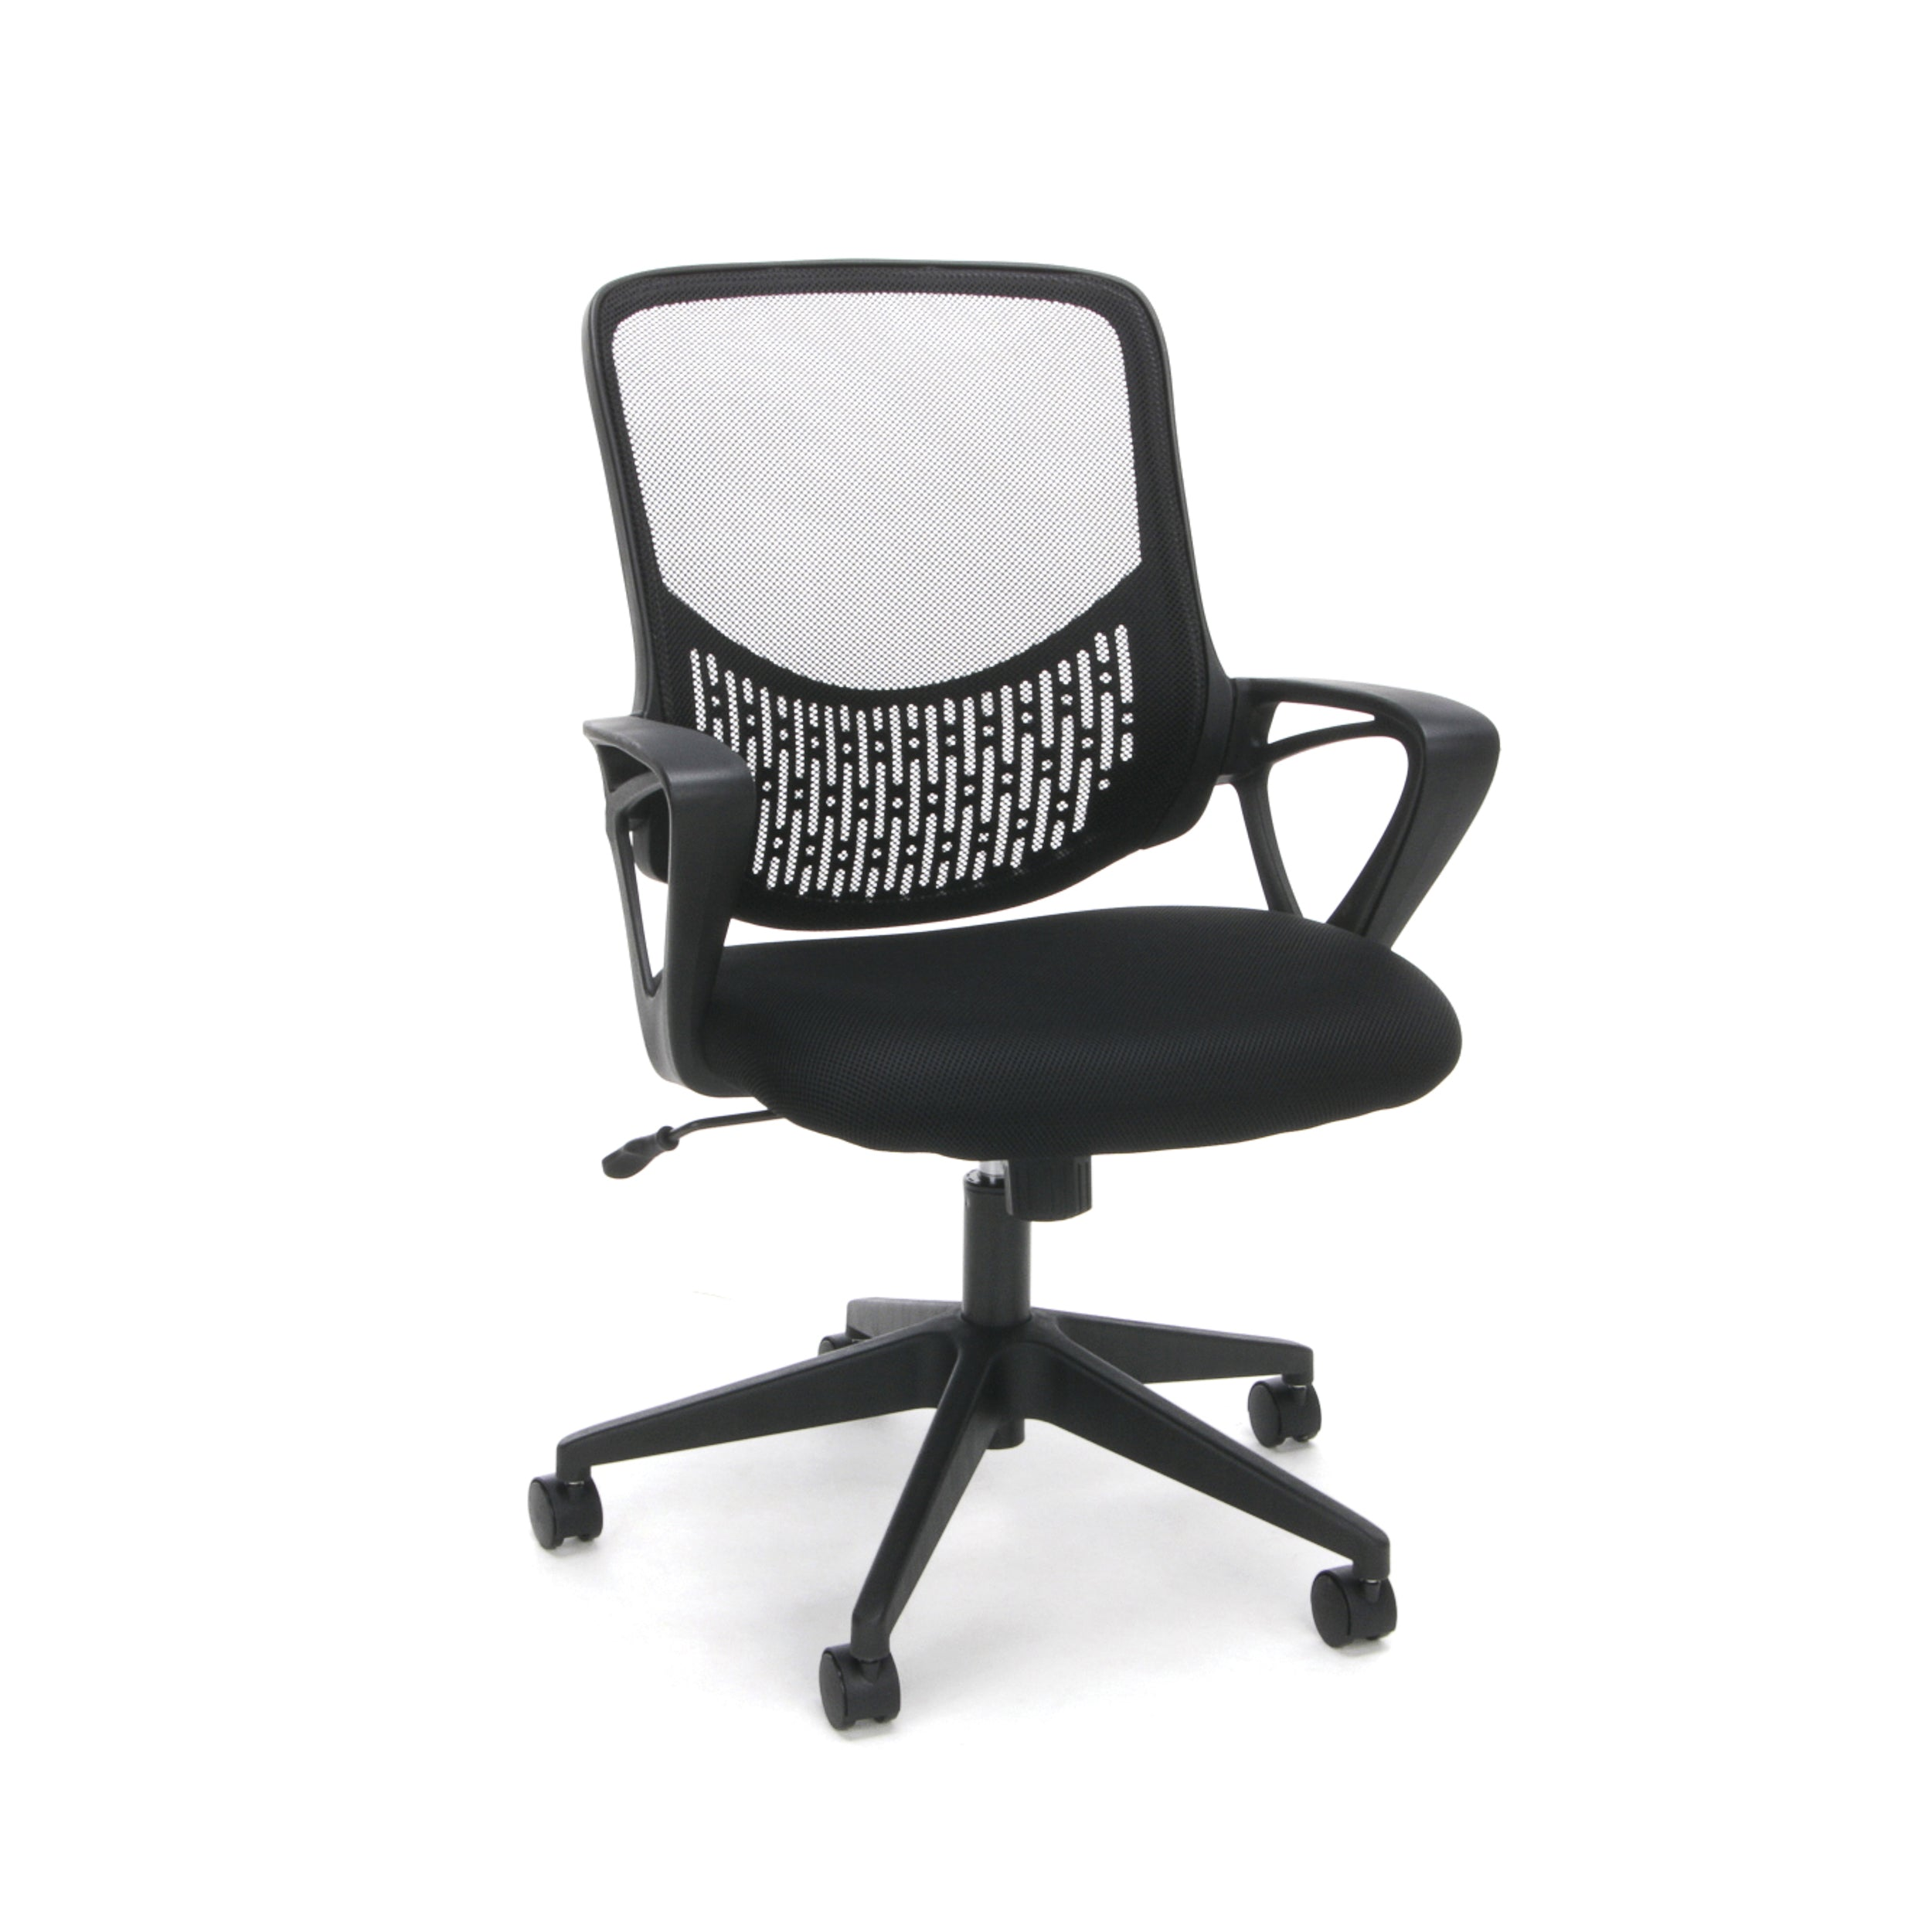 Model ESS-100 Essentials by OFM Mesh Back Task Office Chair